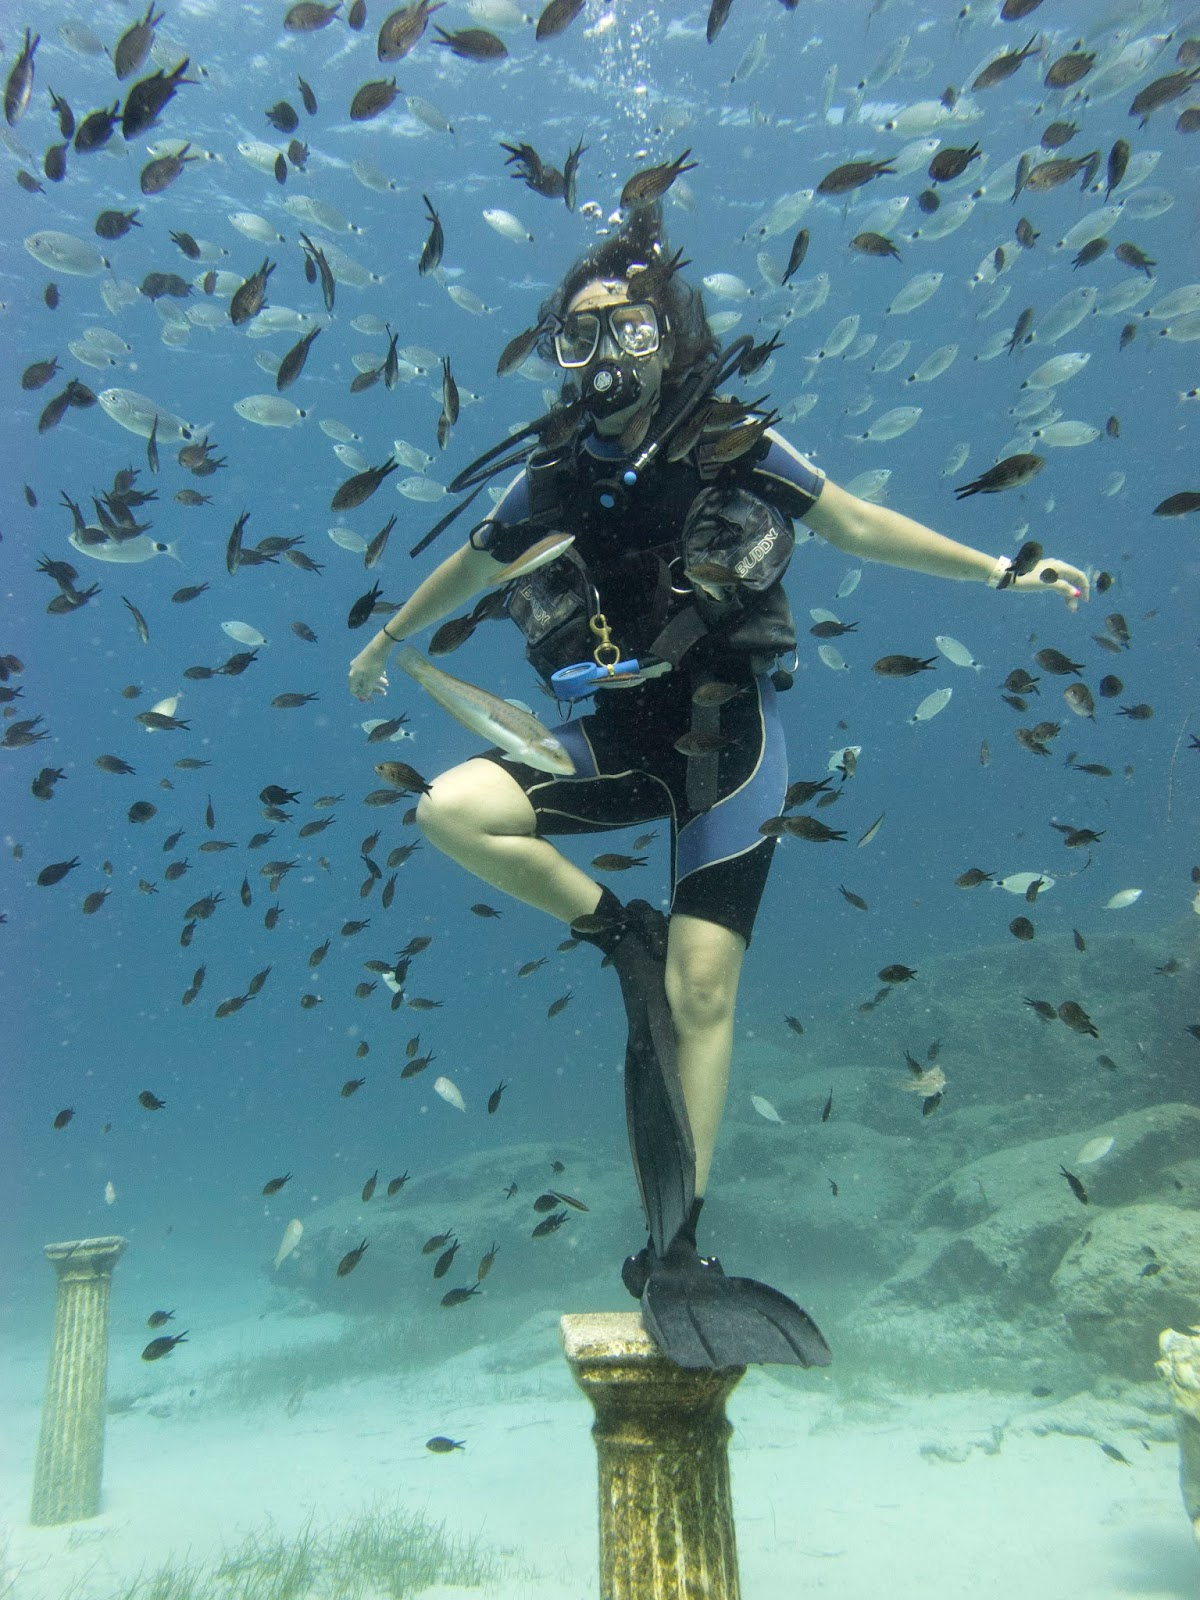 diver posing on underwater podium surrounded by fish